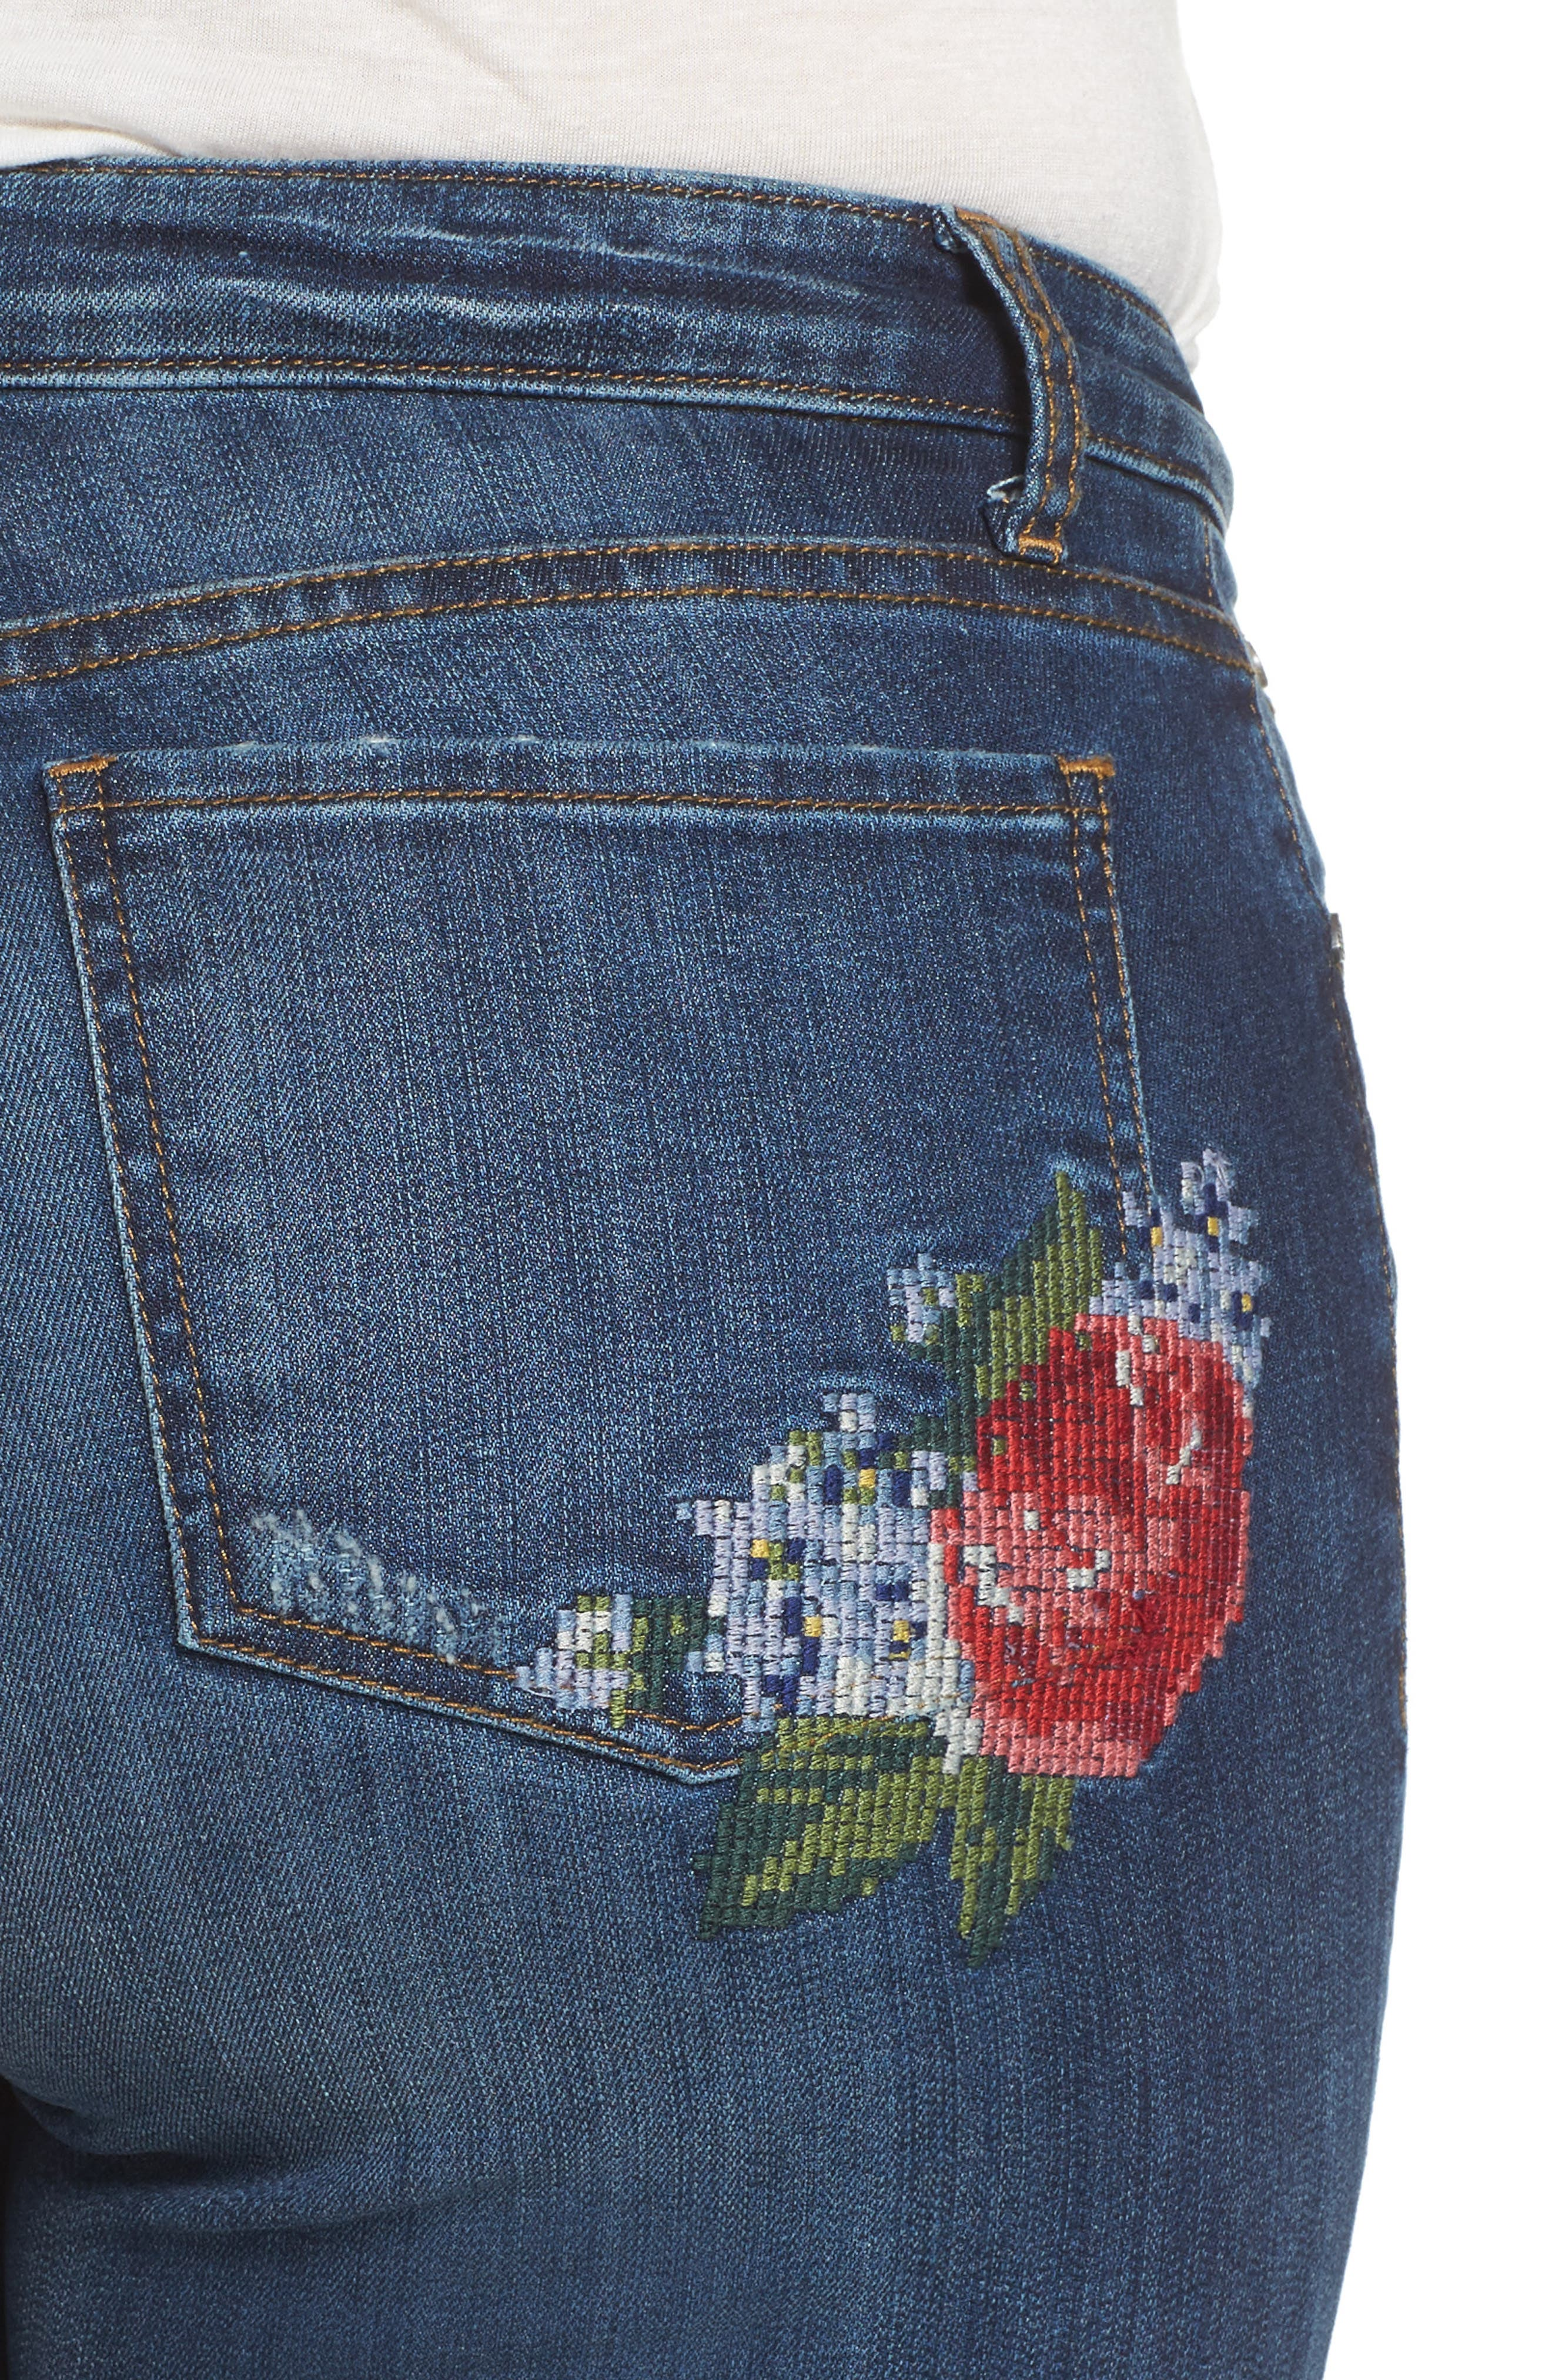 Alternate Image 5  - KUT from the Kloth Catherine Embroidered Boyfriend Jeans (Premier Dark) (Plus Size)